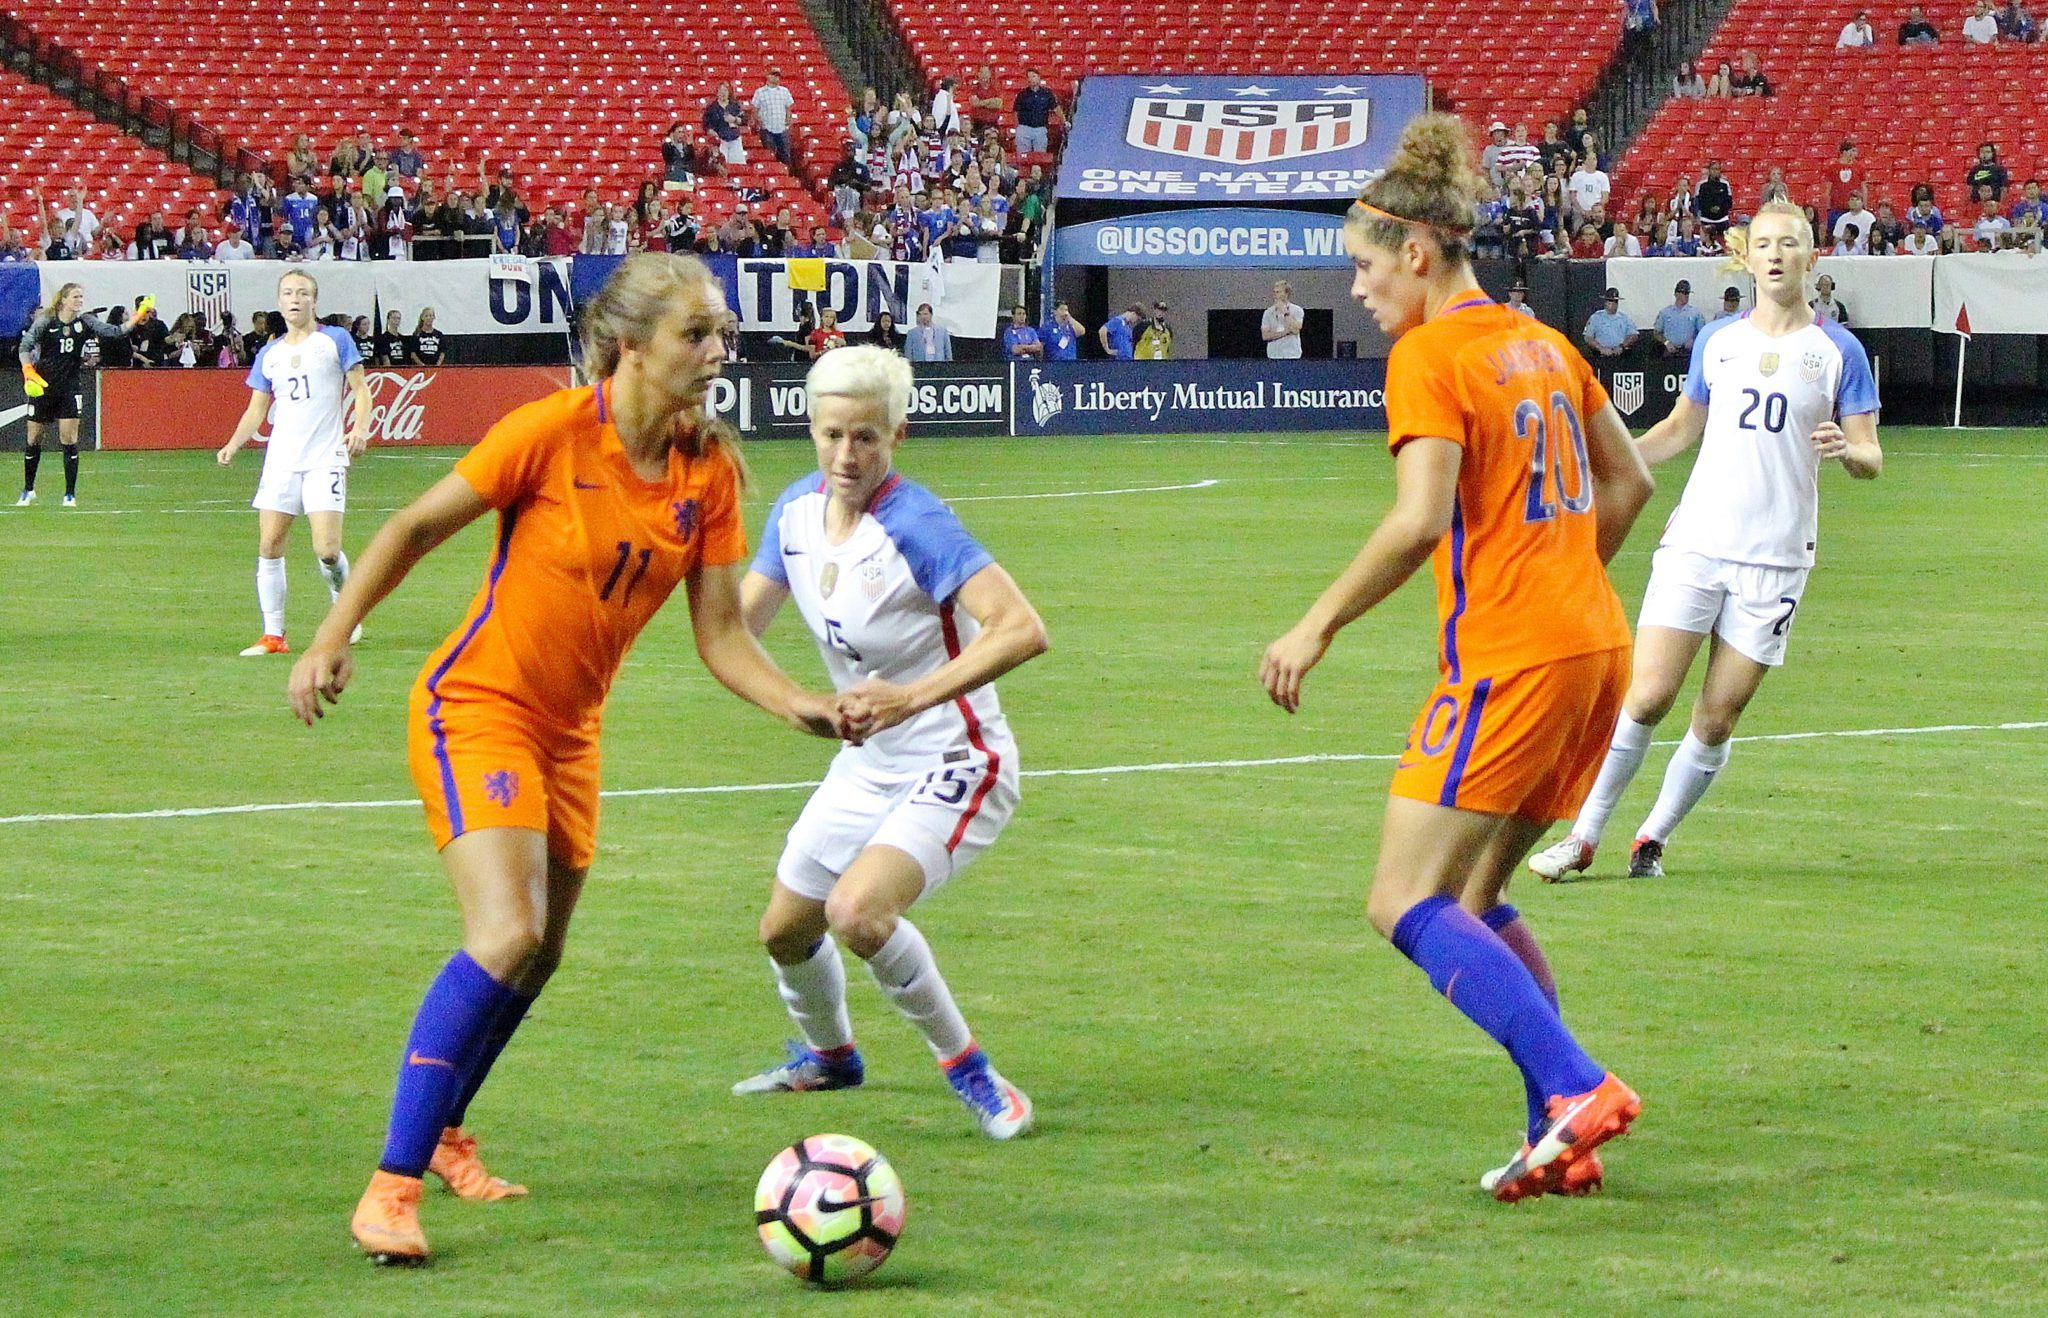 Lieke Martens and Dominique Janssen are two of 25 players named to the Netherlands roster for La Manga. (photo by Allison Lee)